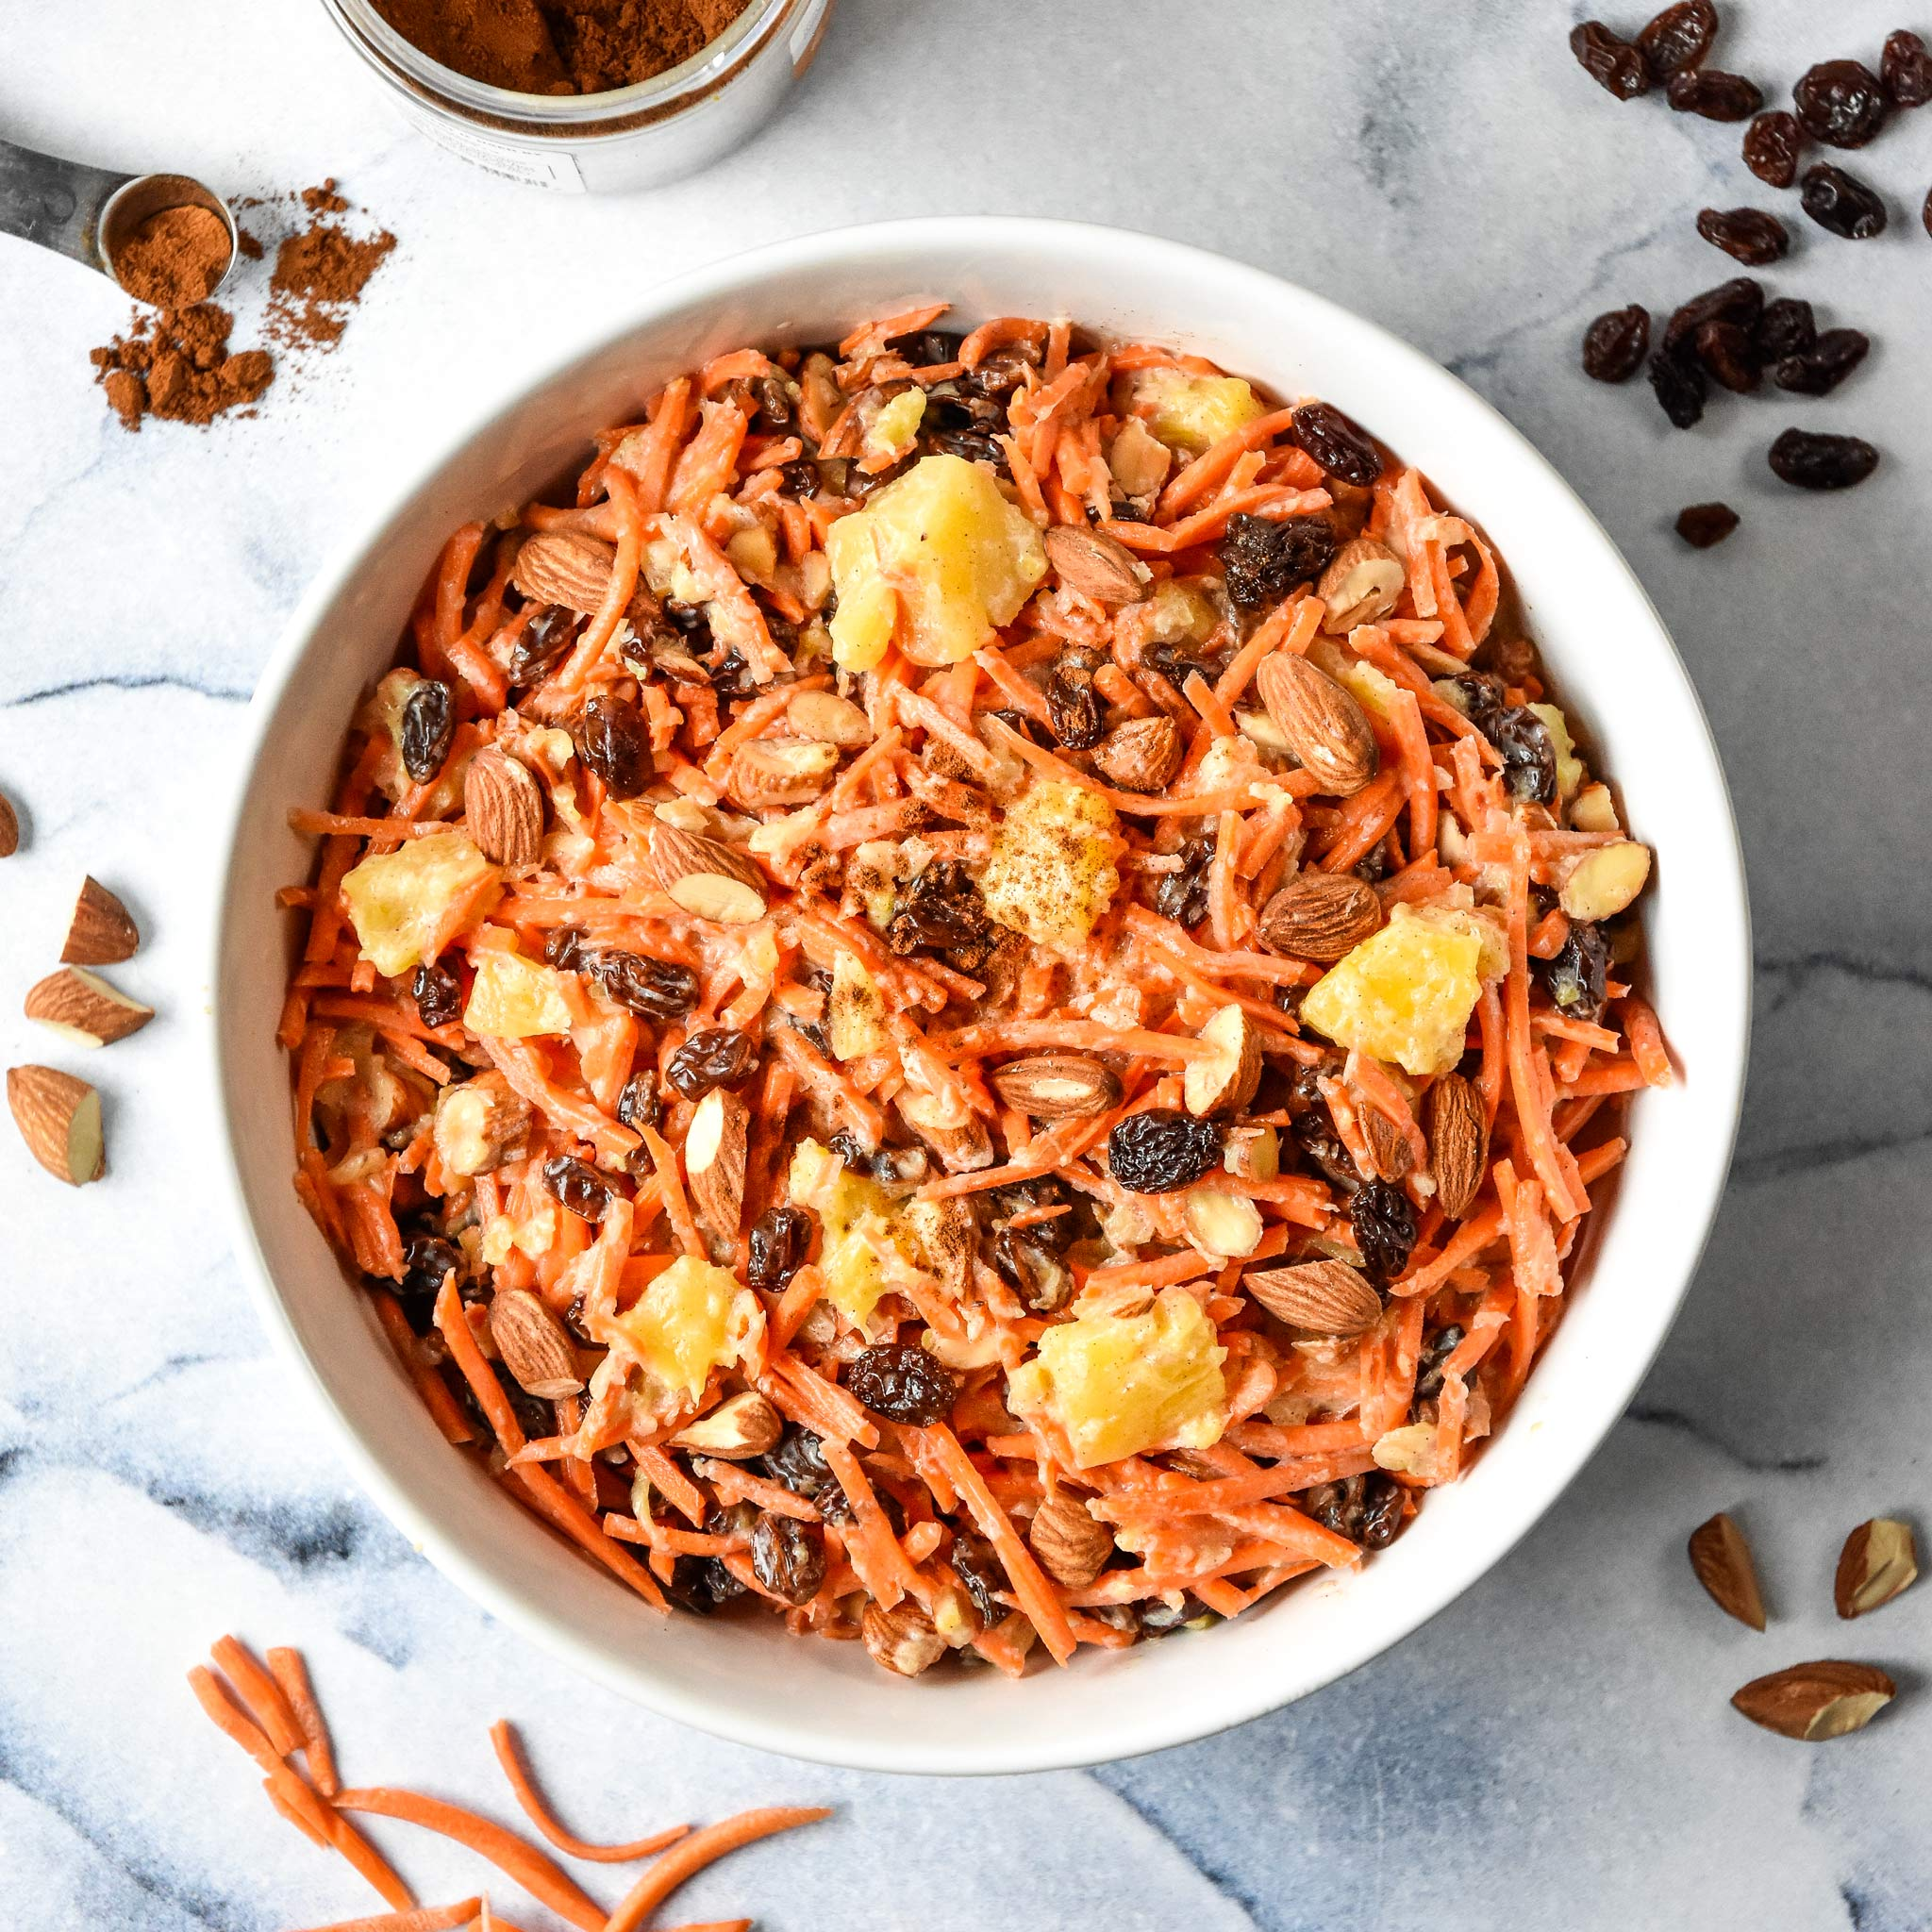 cinnamon raisin carrot salad in a white bowl from the top